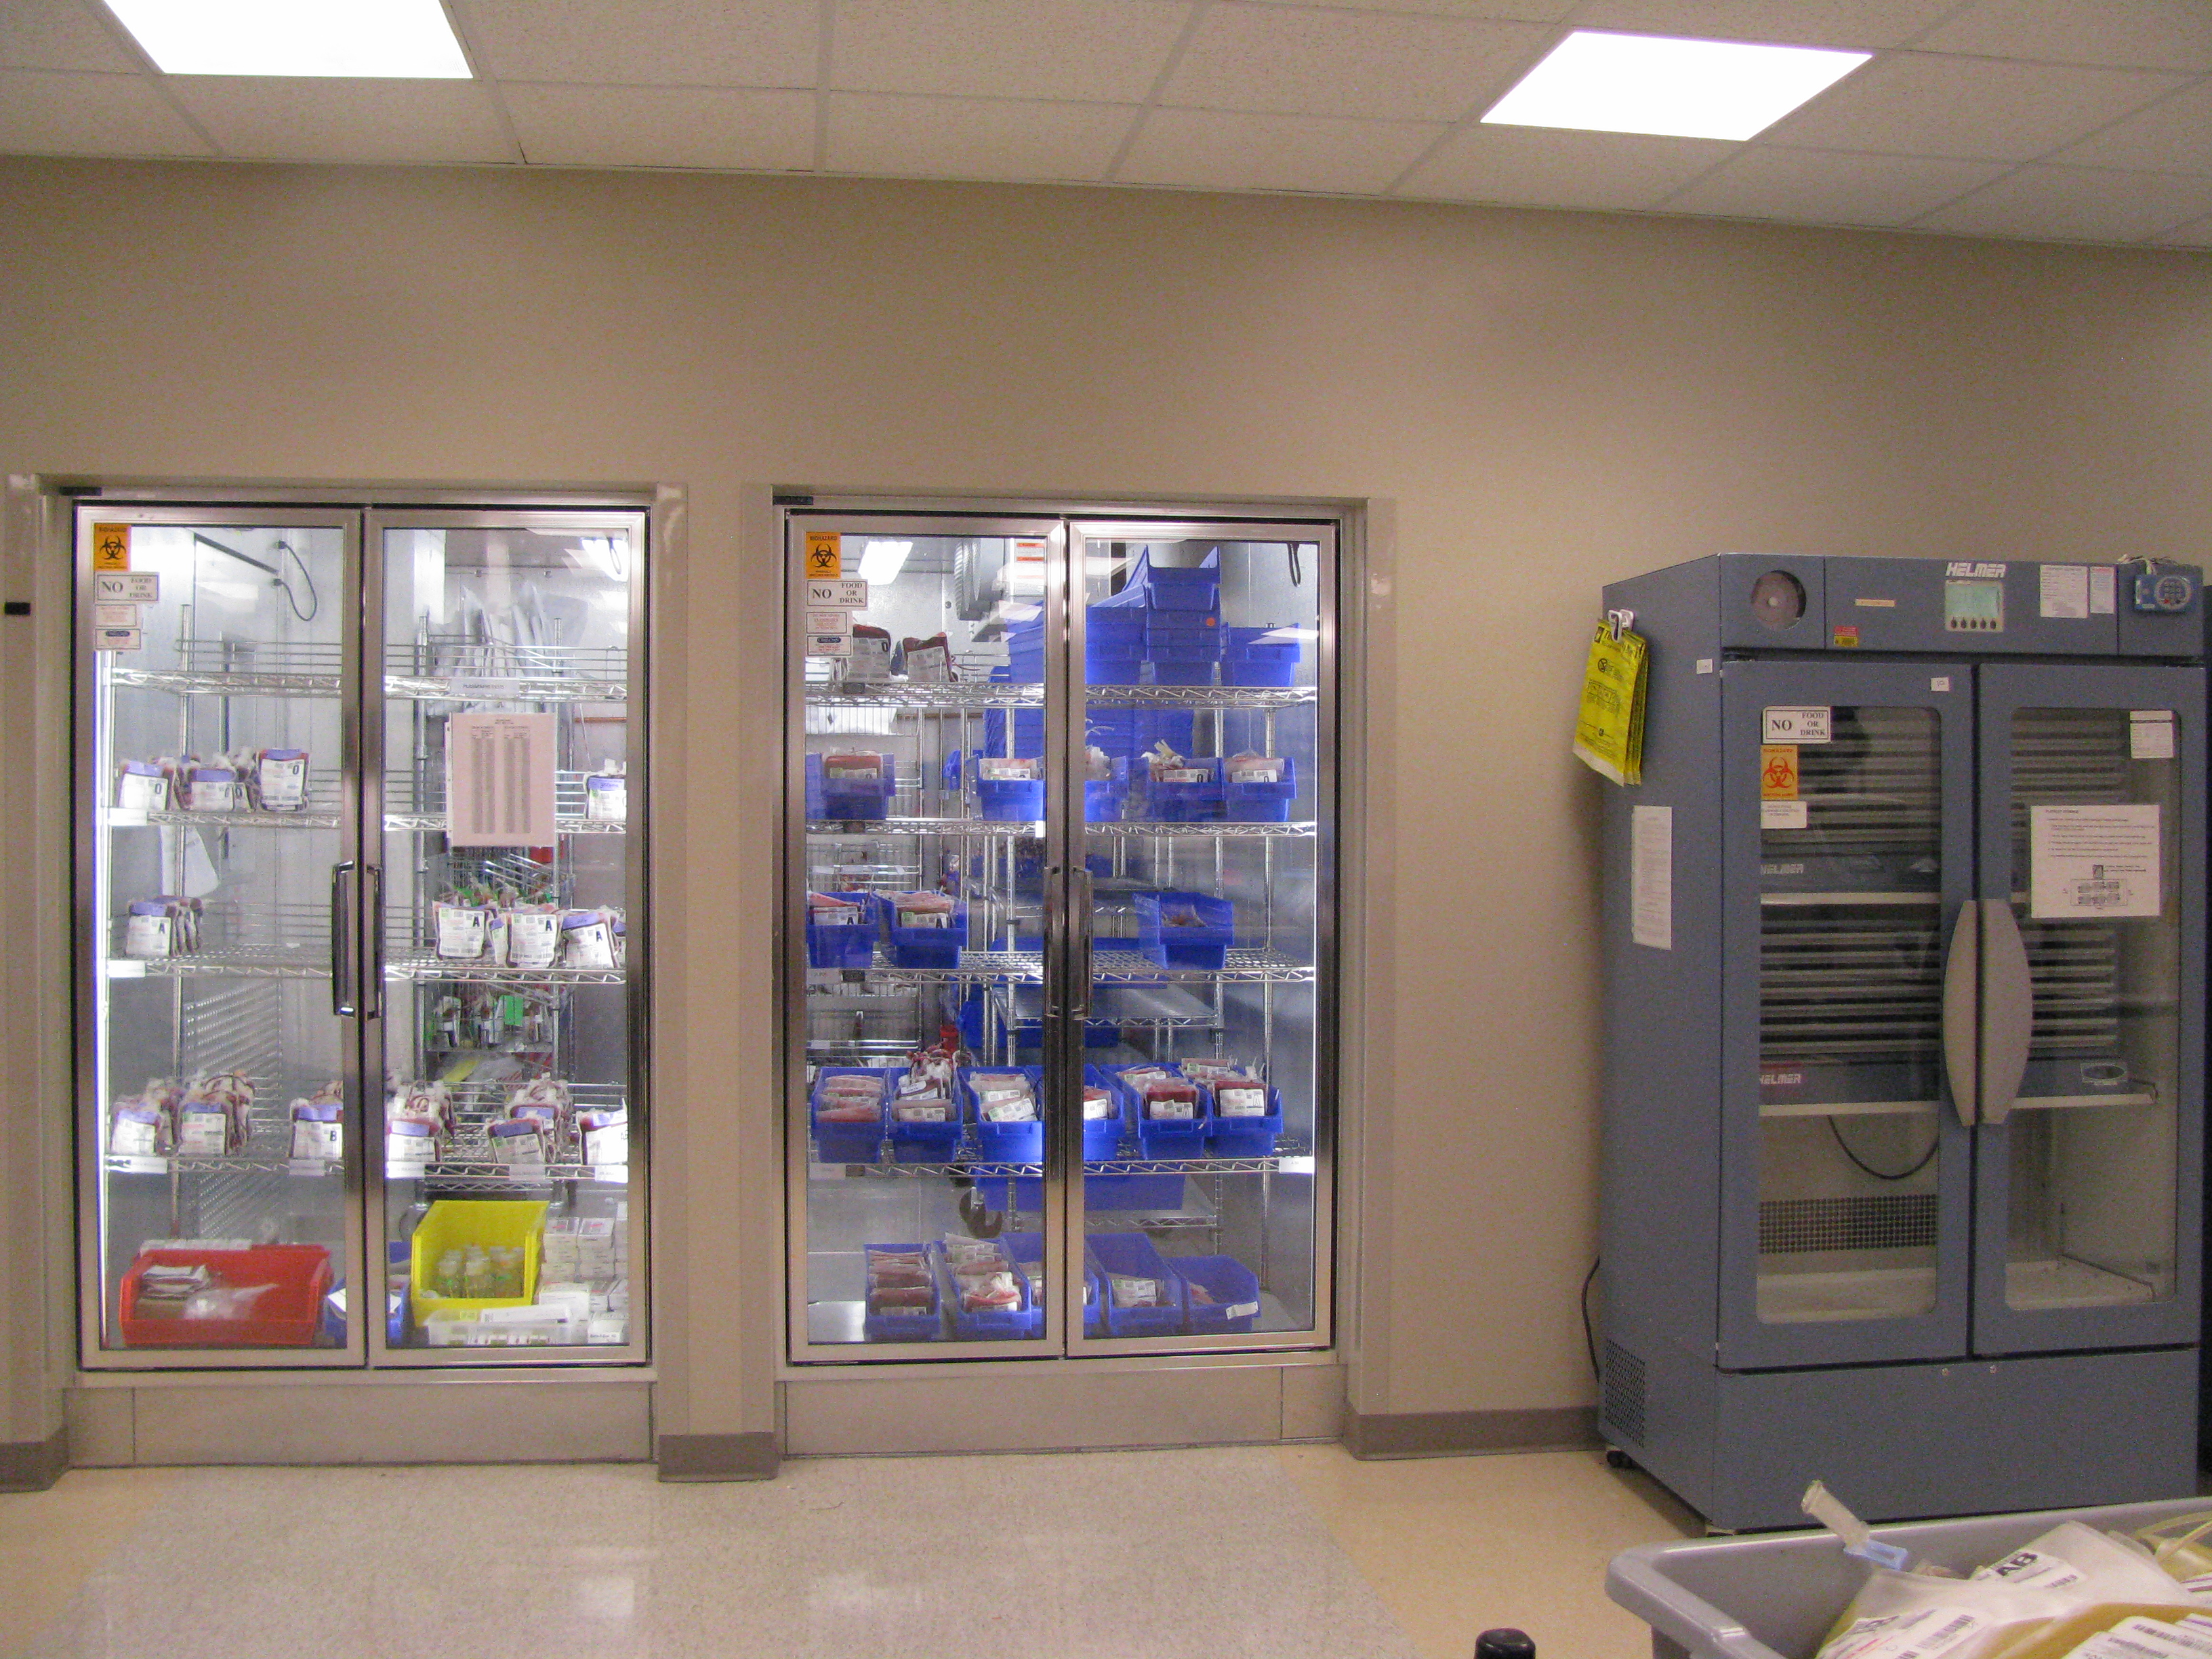 tm walk in refrigerator - Walk In Refrigerator